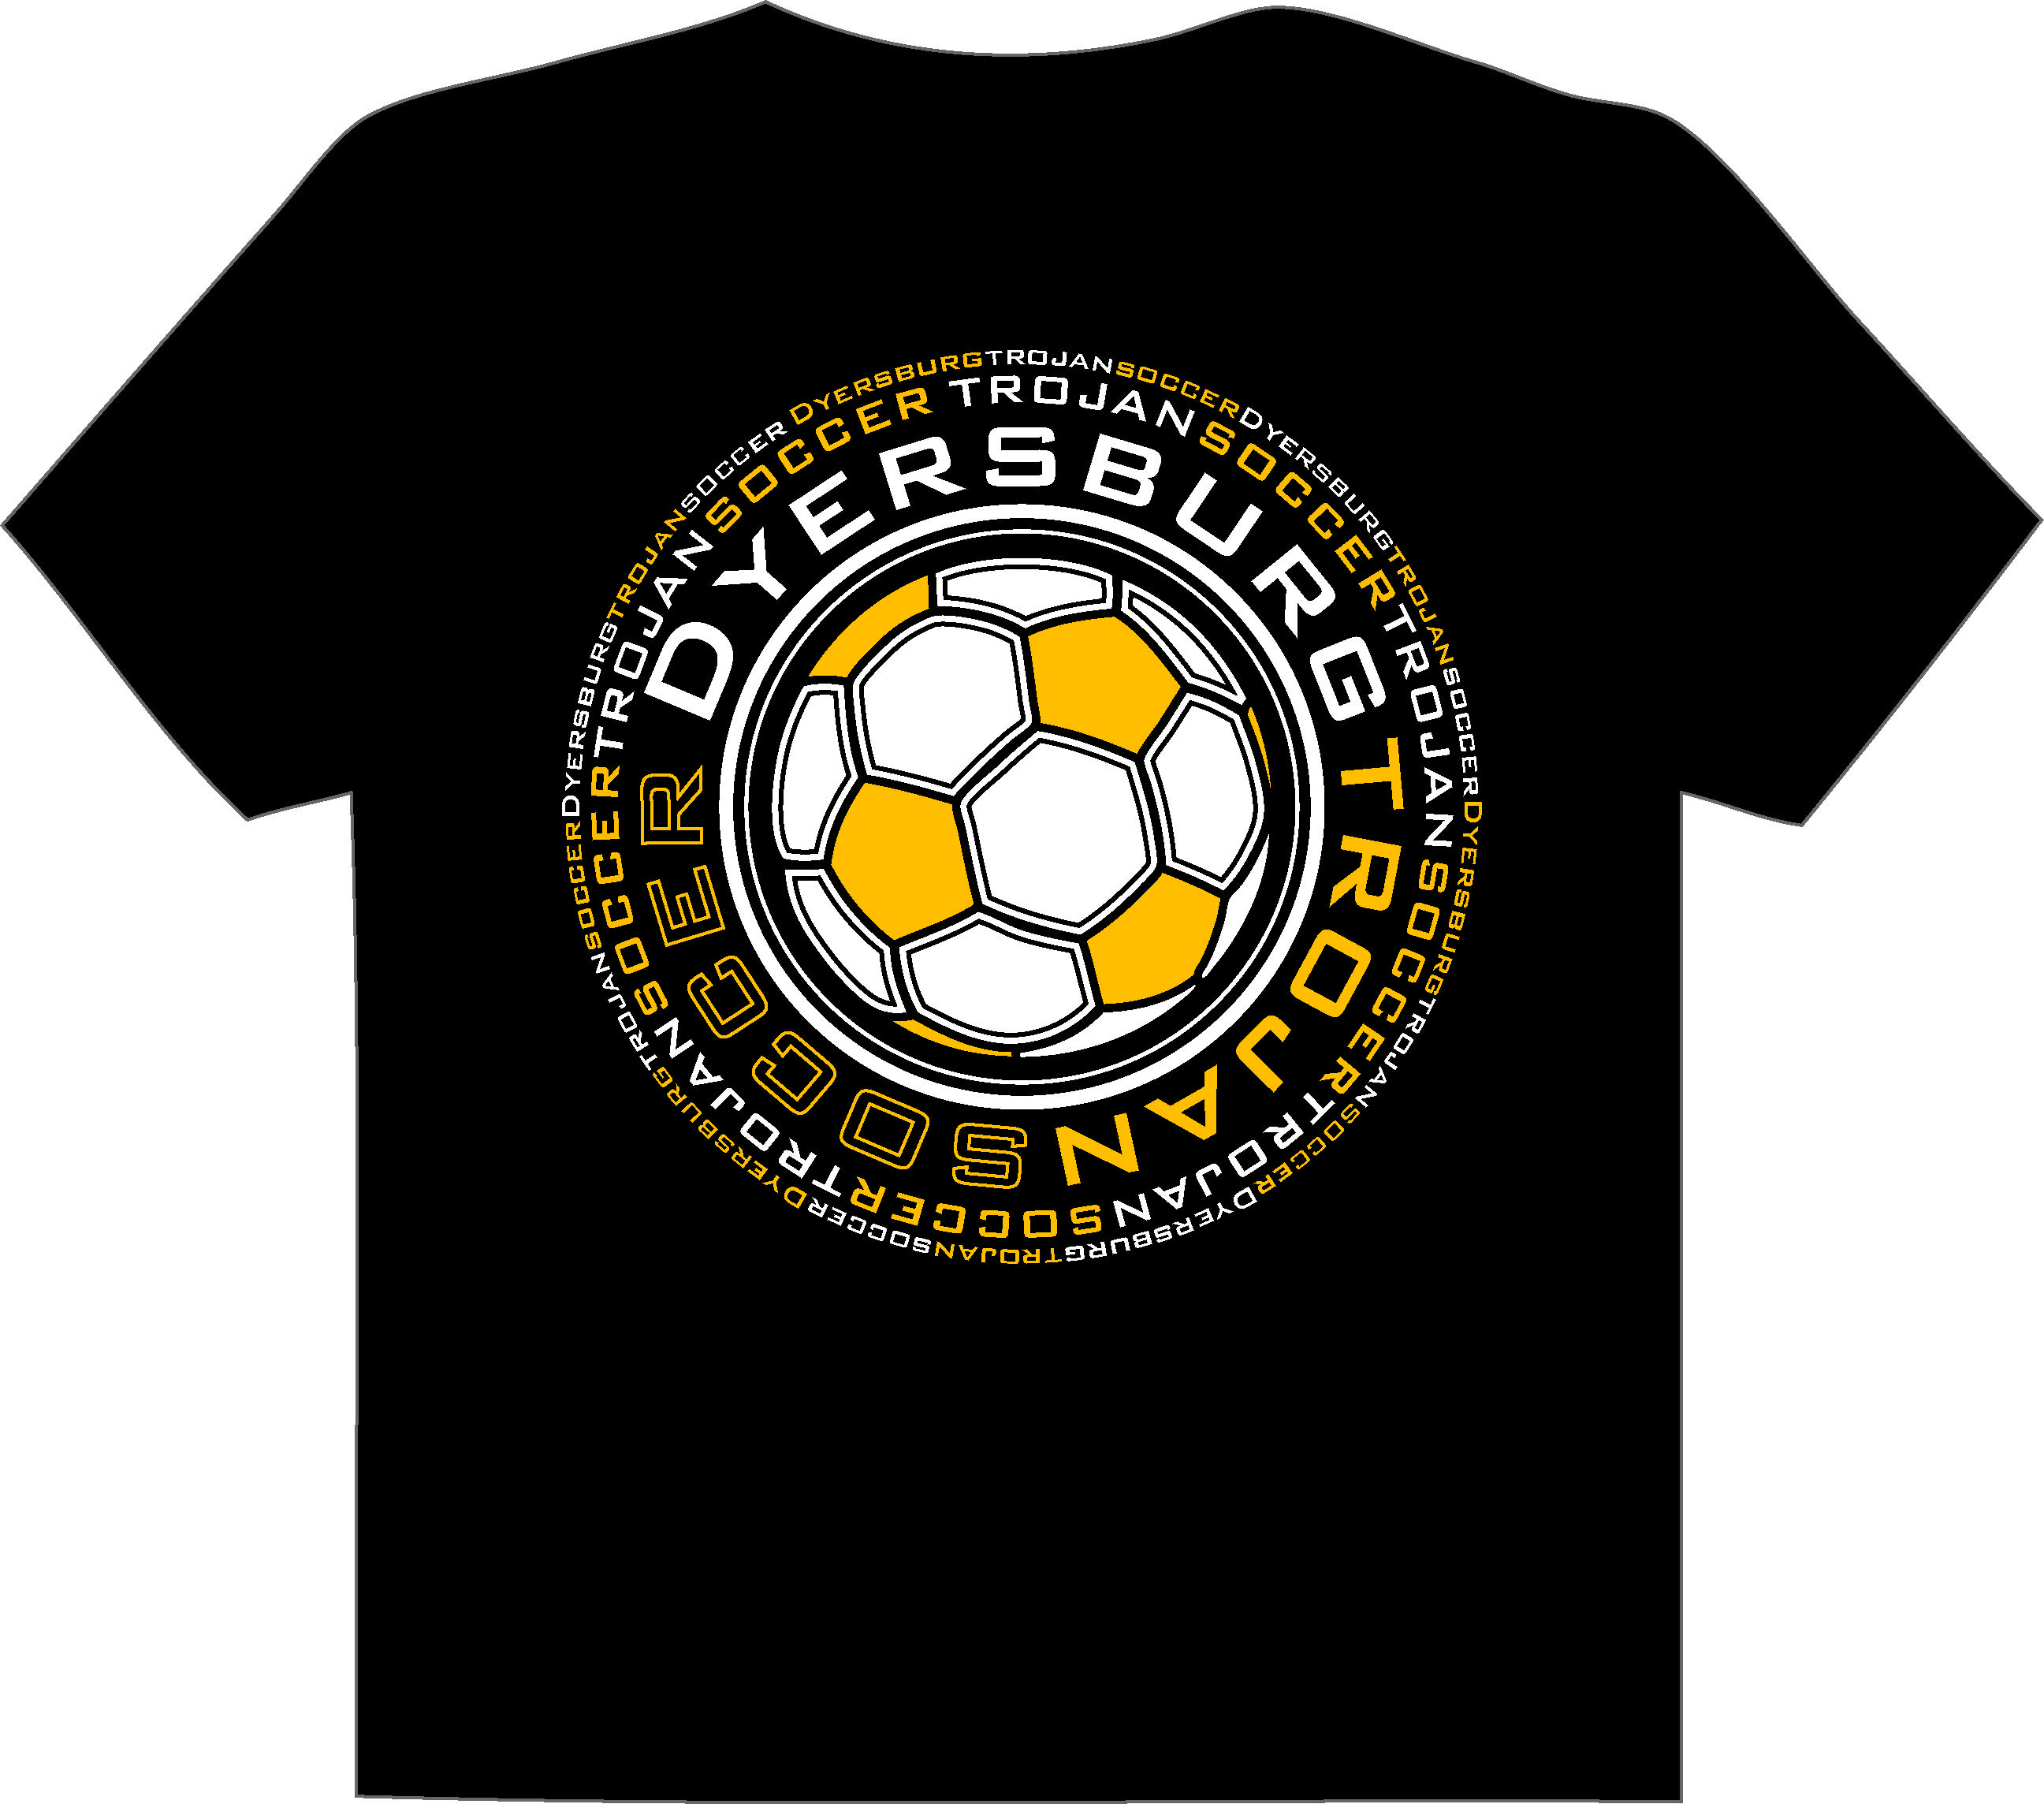 High School Soccer T Shirts Soccer Shirts Designs Soccer Shirts High School Soccer Shirts